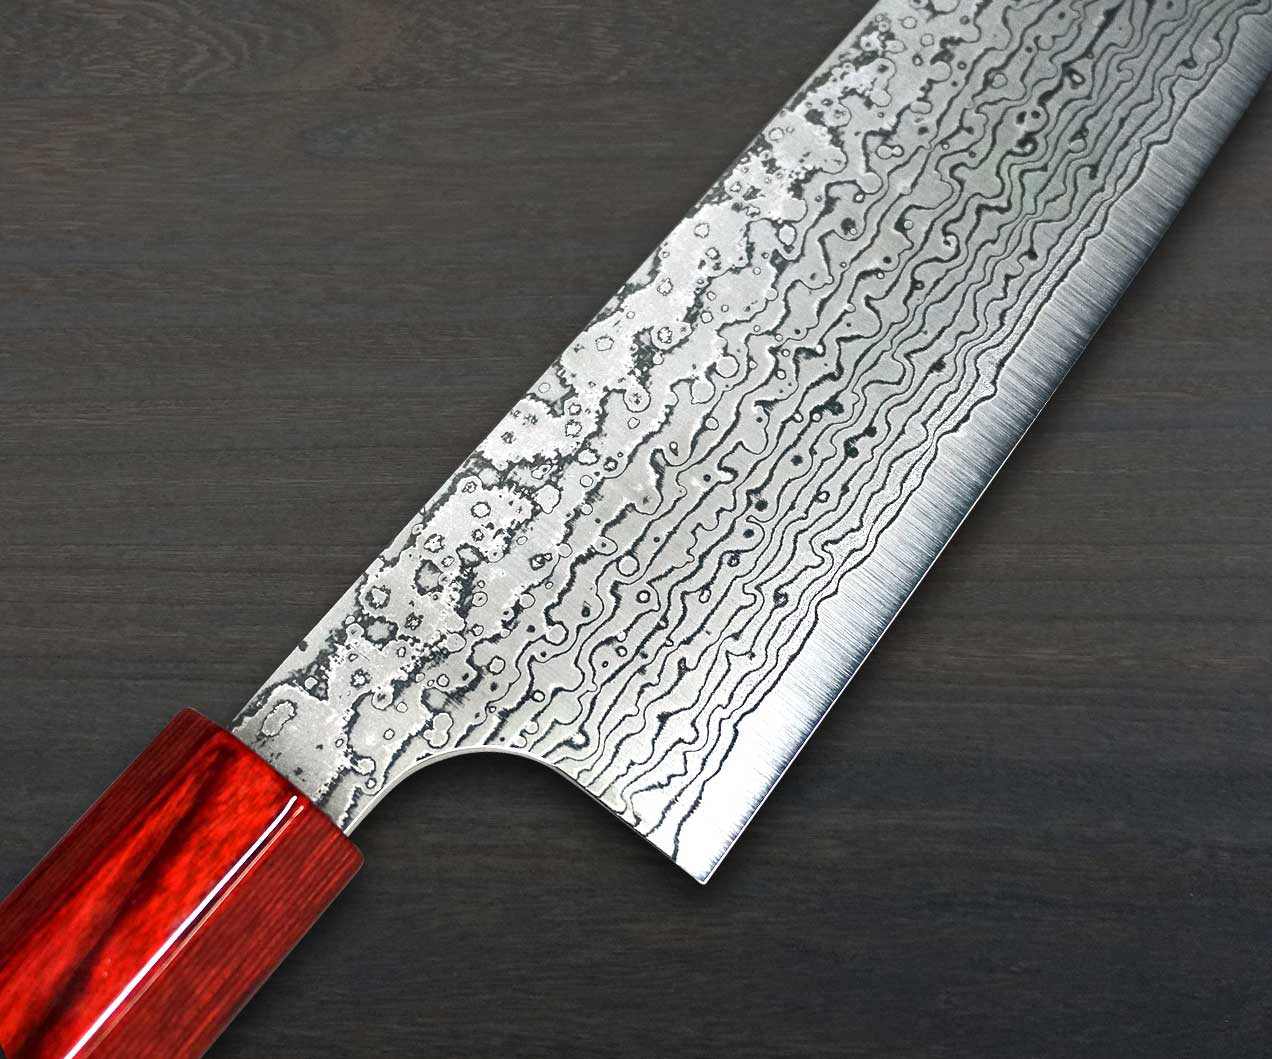 Kei Kobayashi R2 Damascus Special Finished